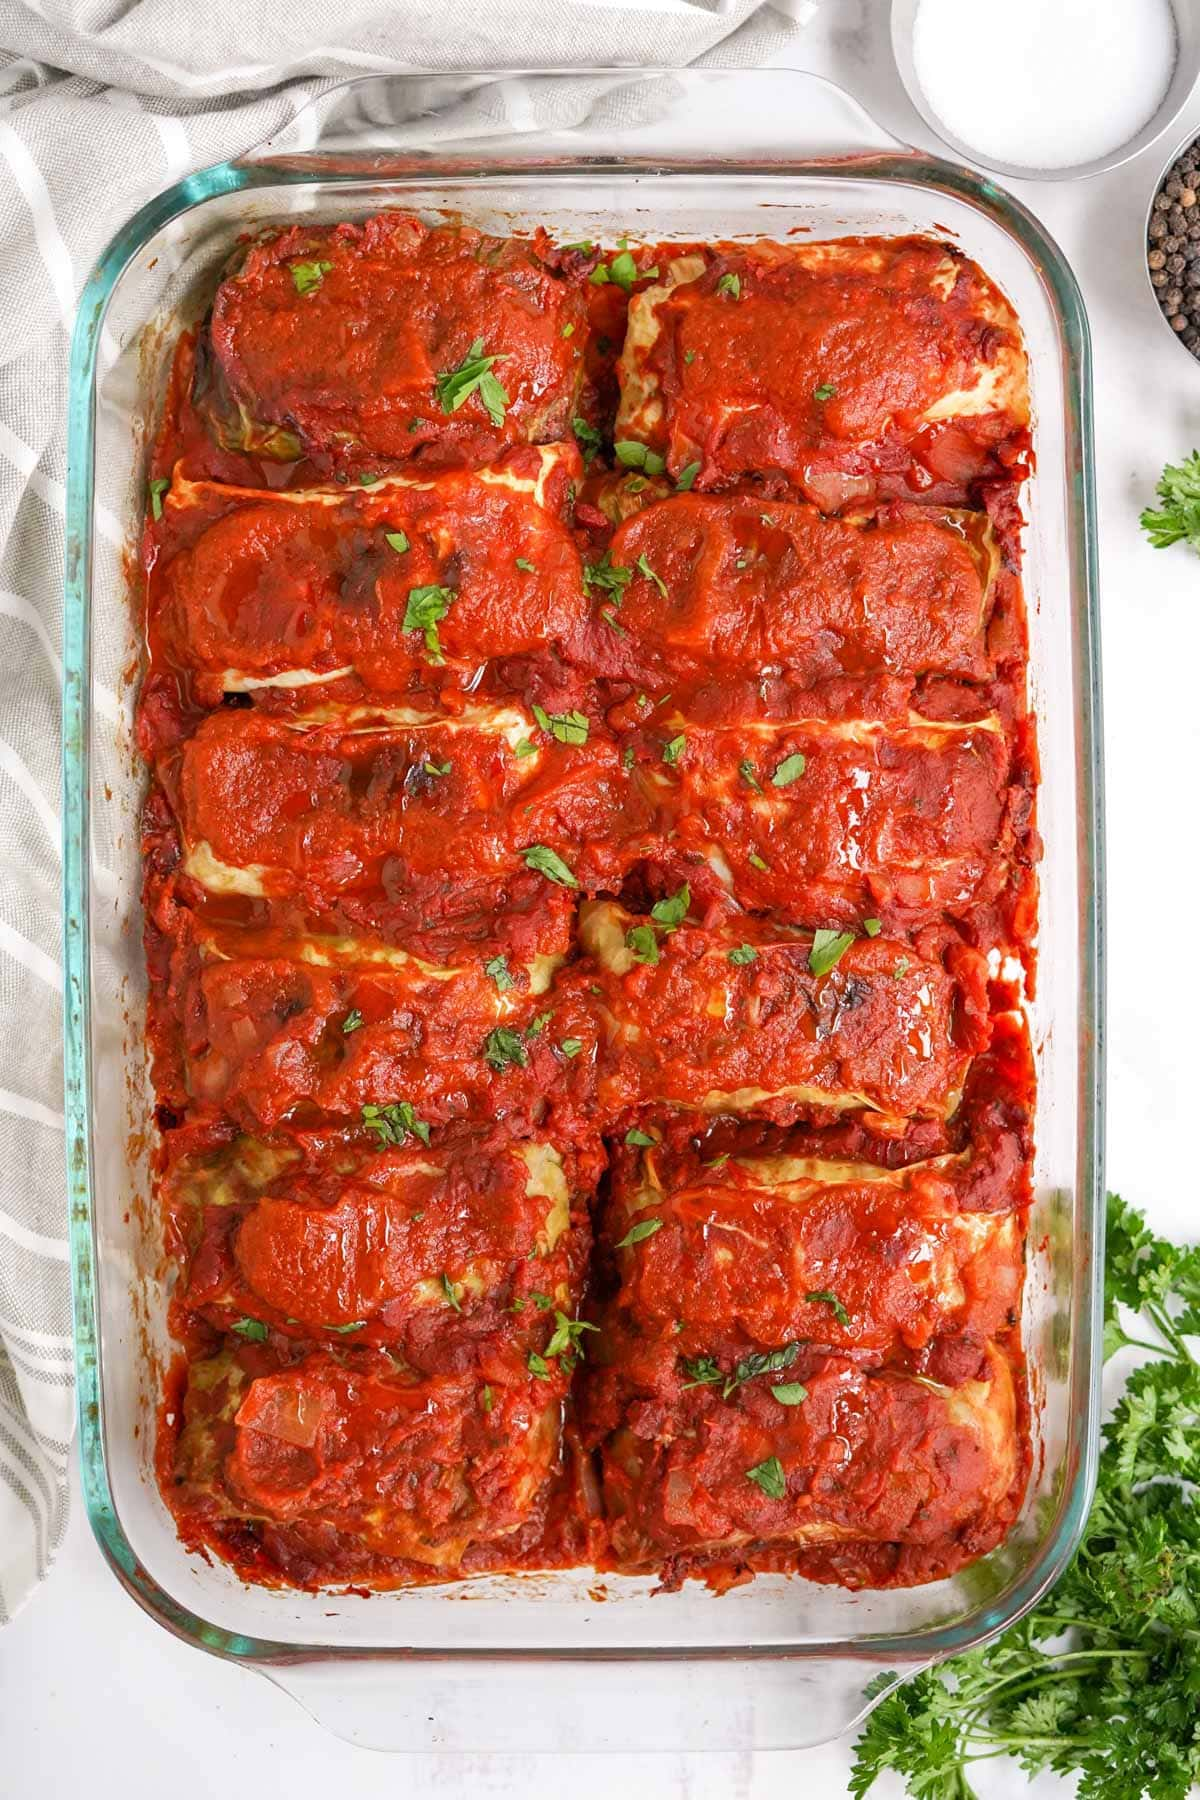 clear glass baking dish with cabbage rolls and sauce